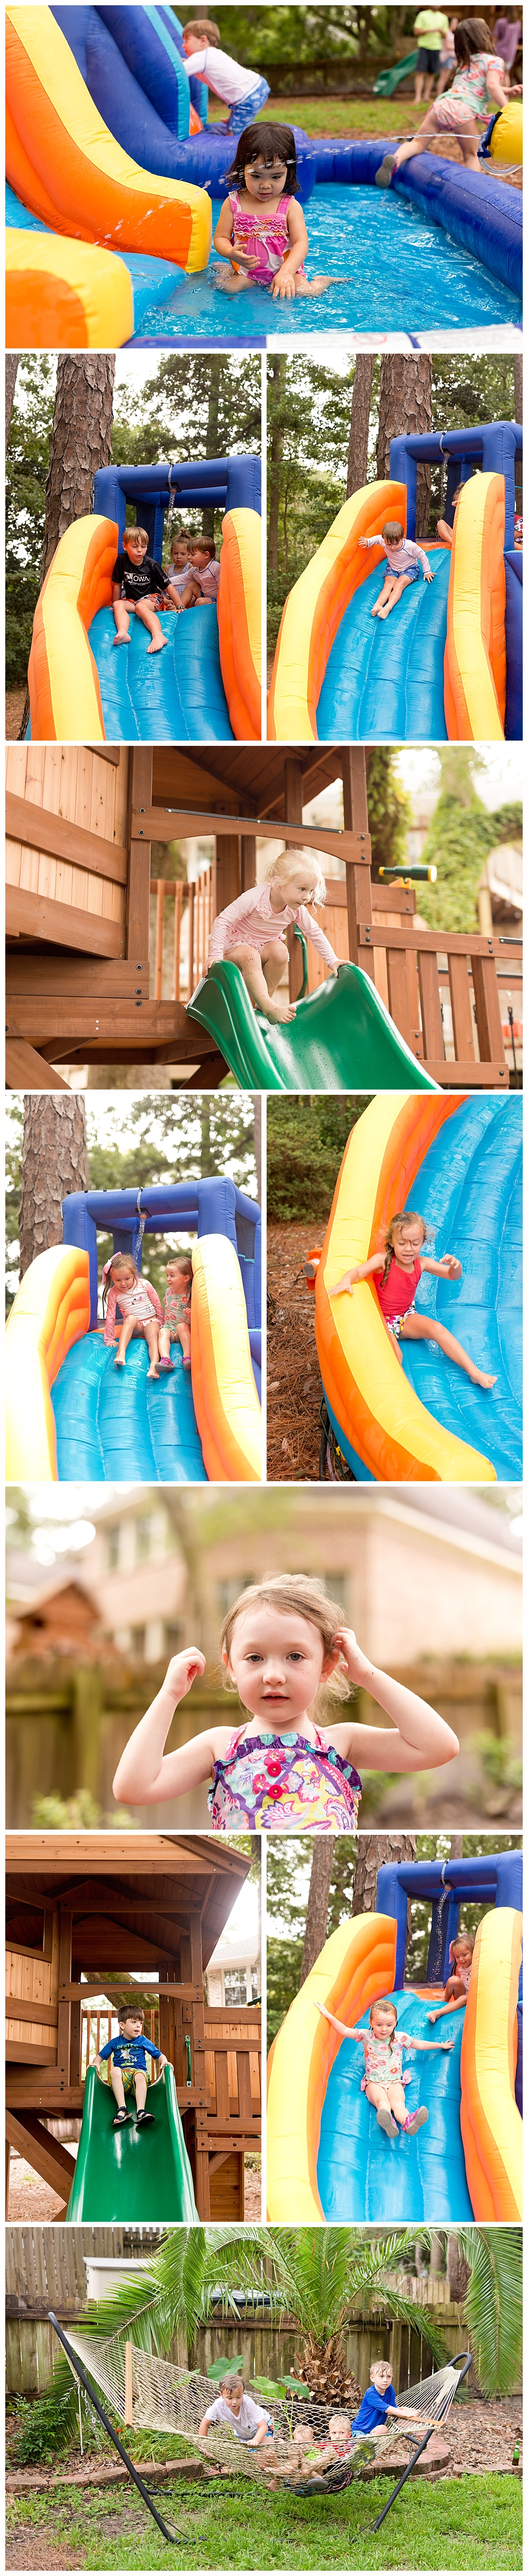 kids playing on inflatable water slide in back yard at child's birthday party